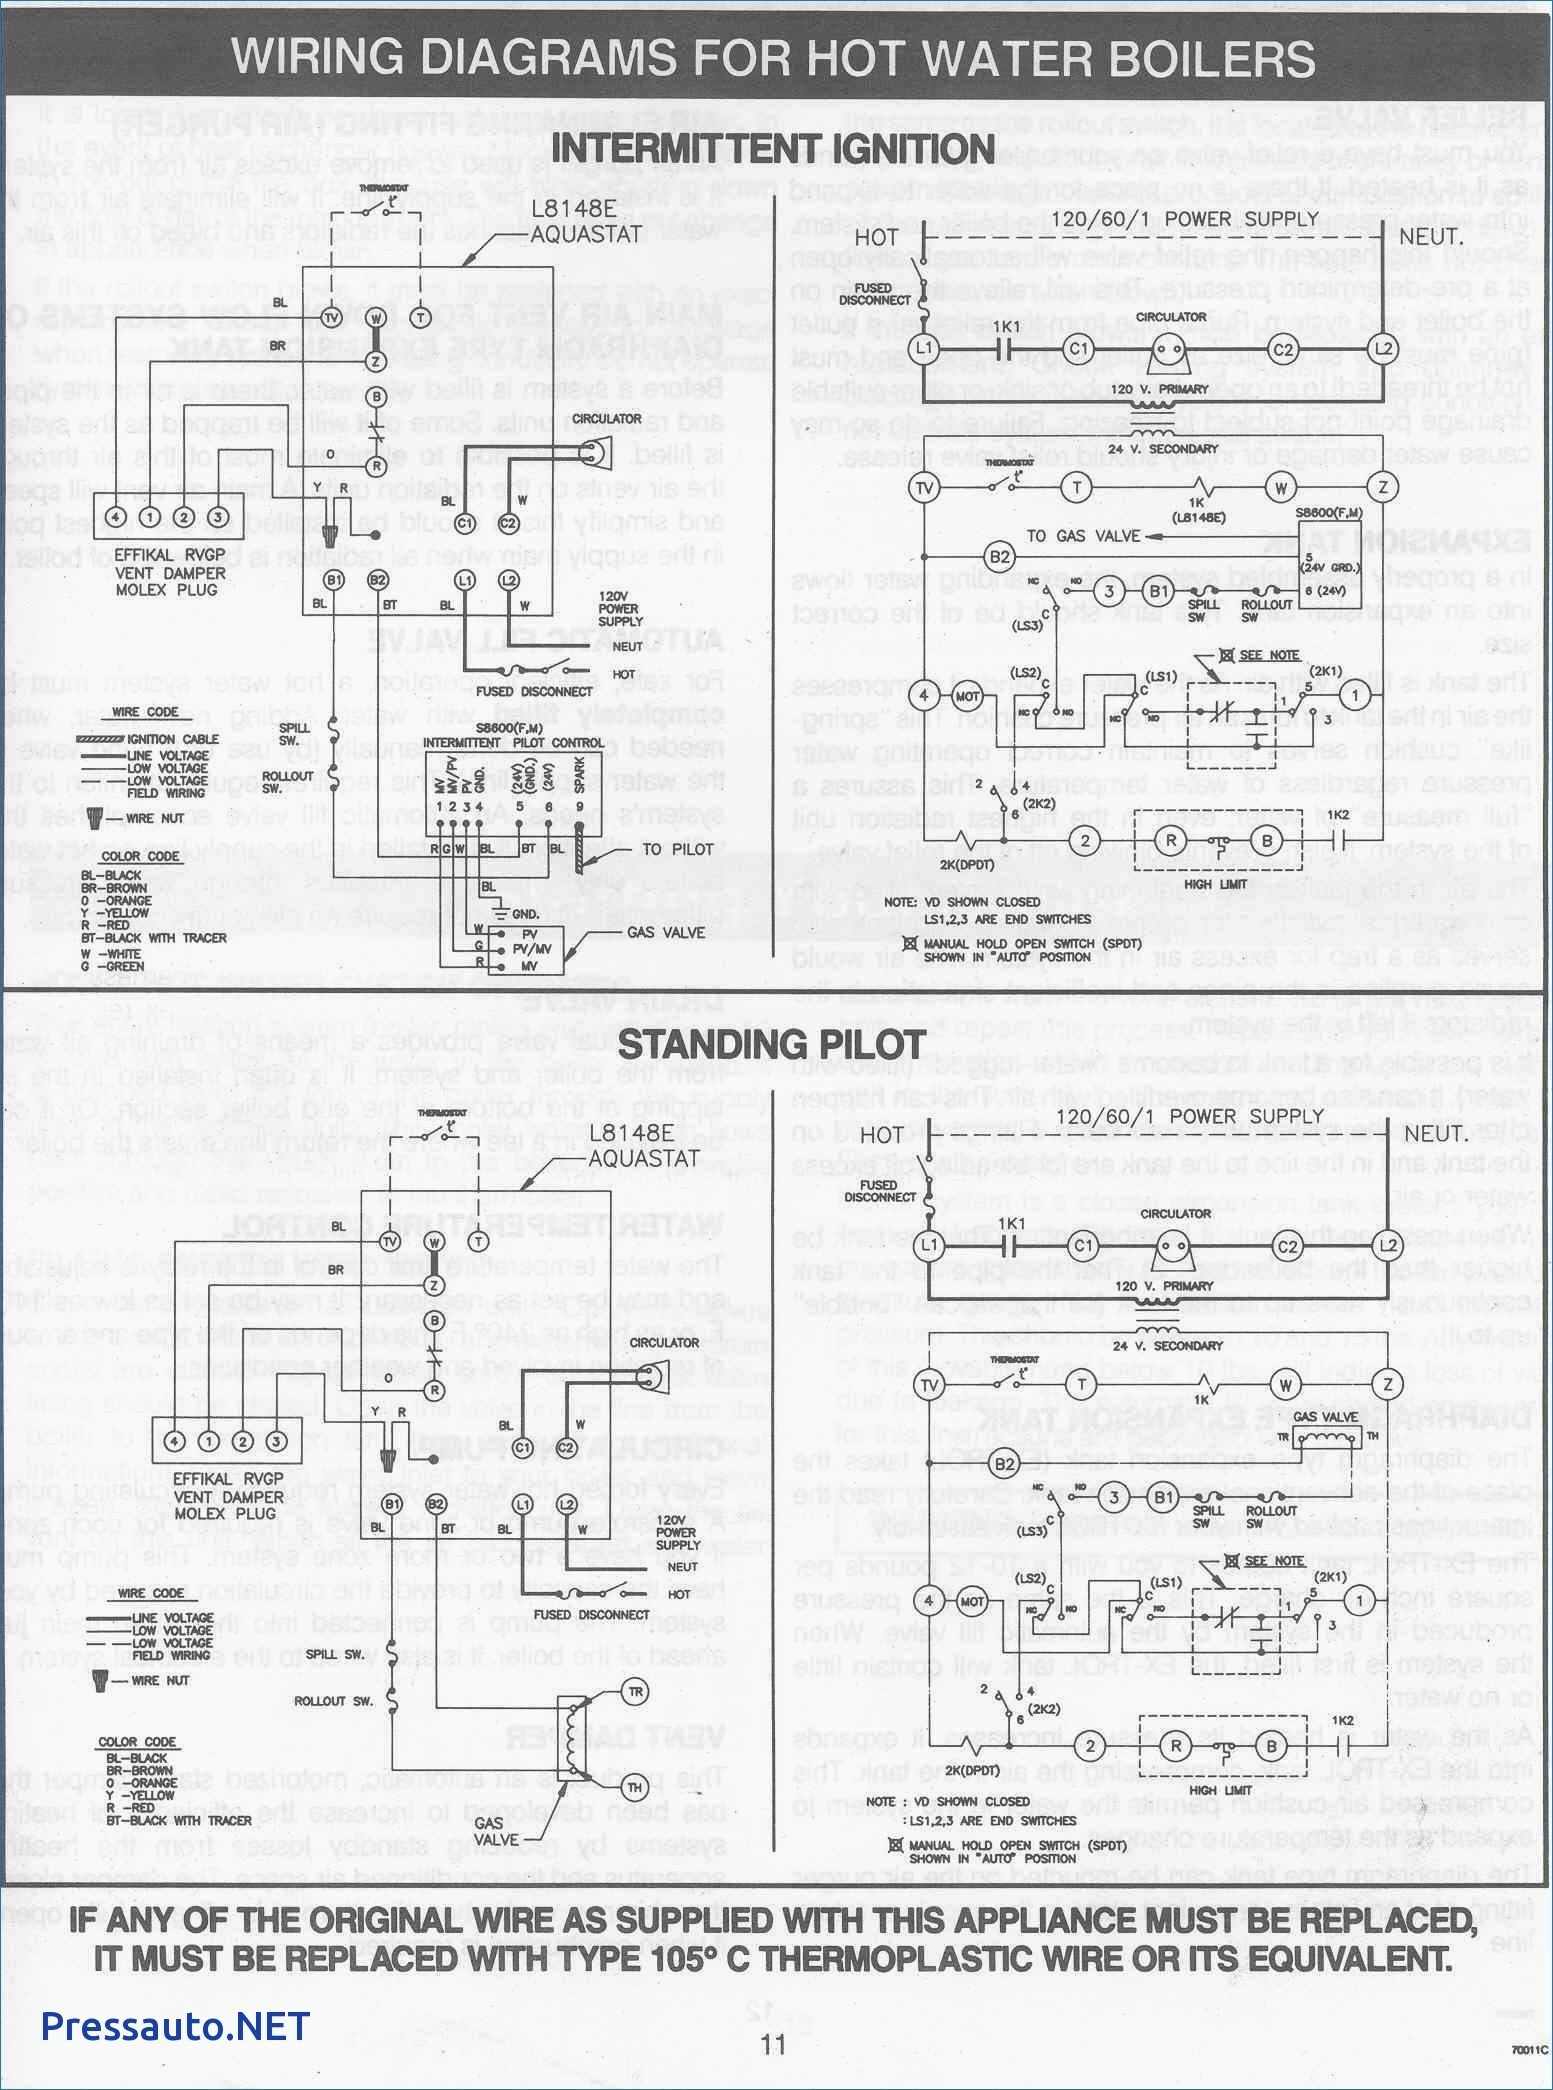 Magnificent Honeywell L6006C Aquastat Wiring Diagram Wiring Diagram Wiring Digital Resources Spoatbouhousnl